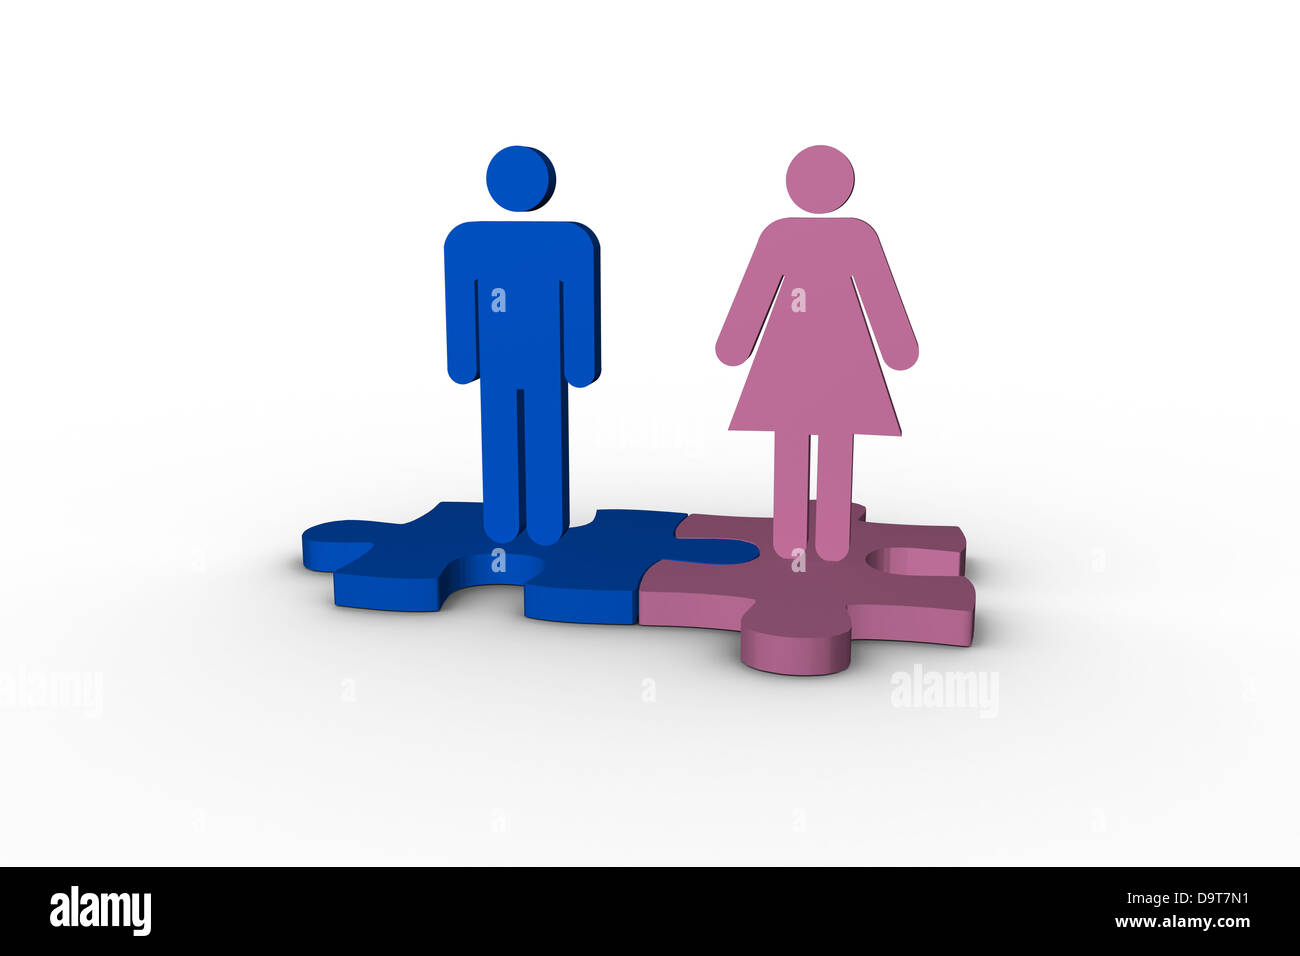 Blue and pink human figures over jigsaw pieces meshed together - Stock Image